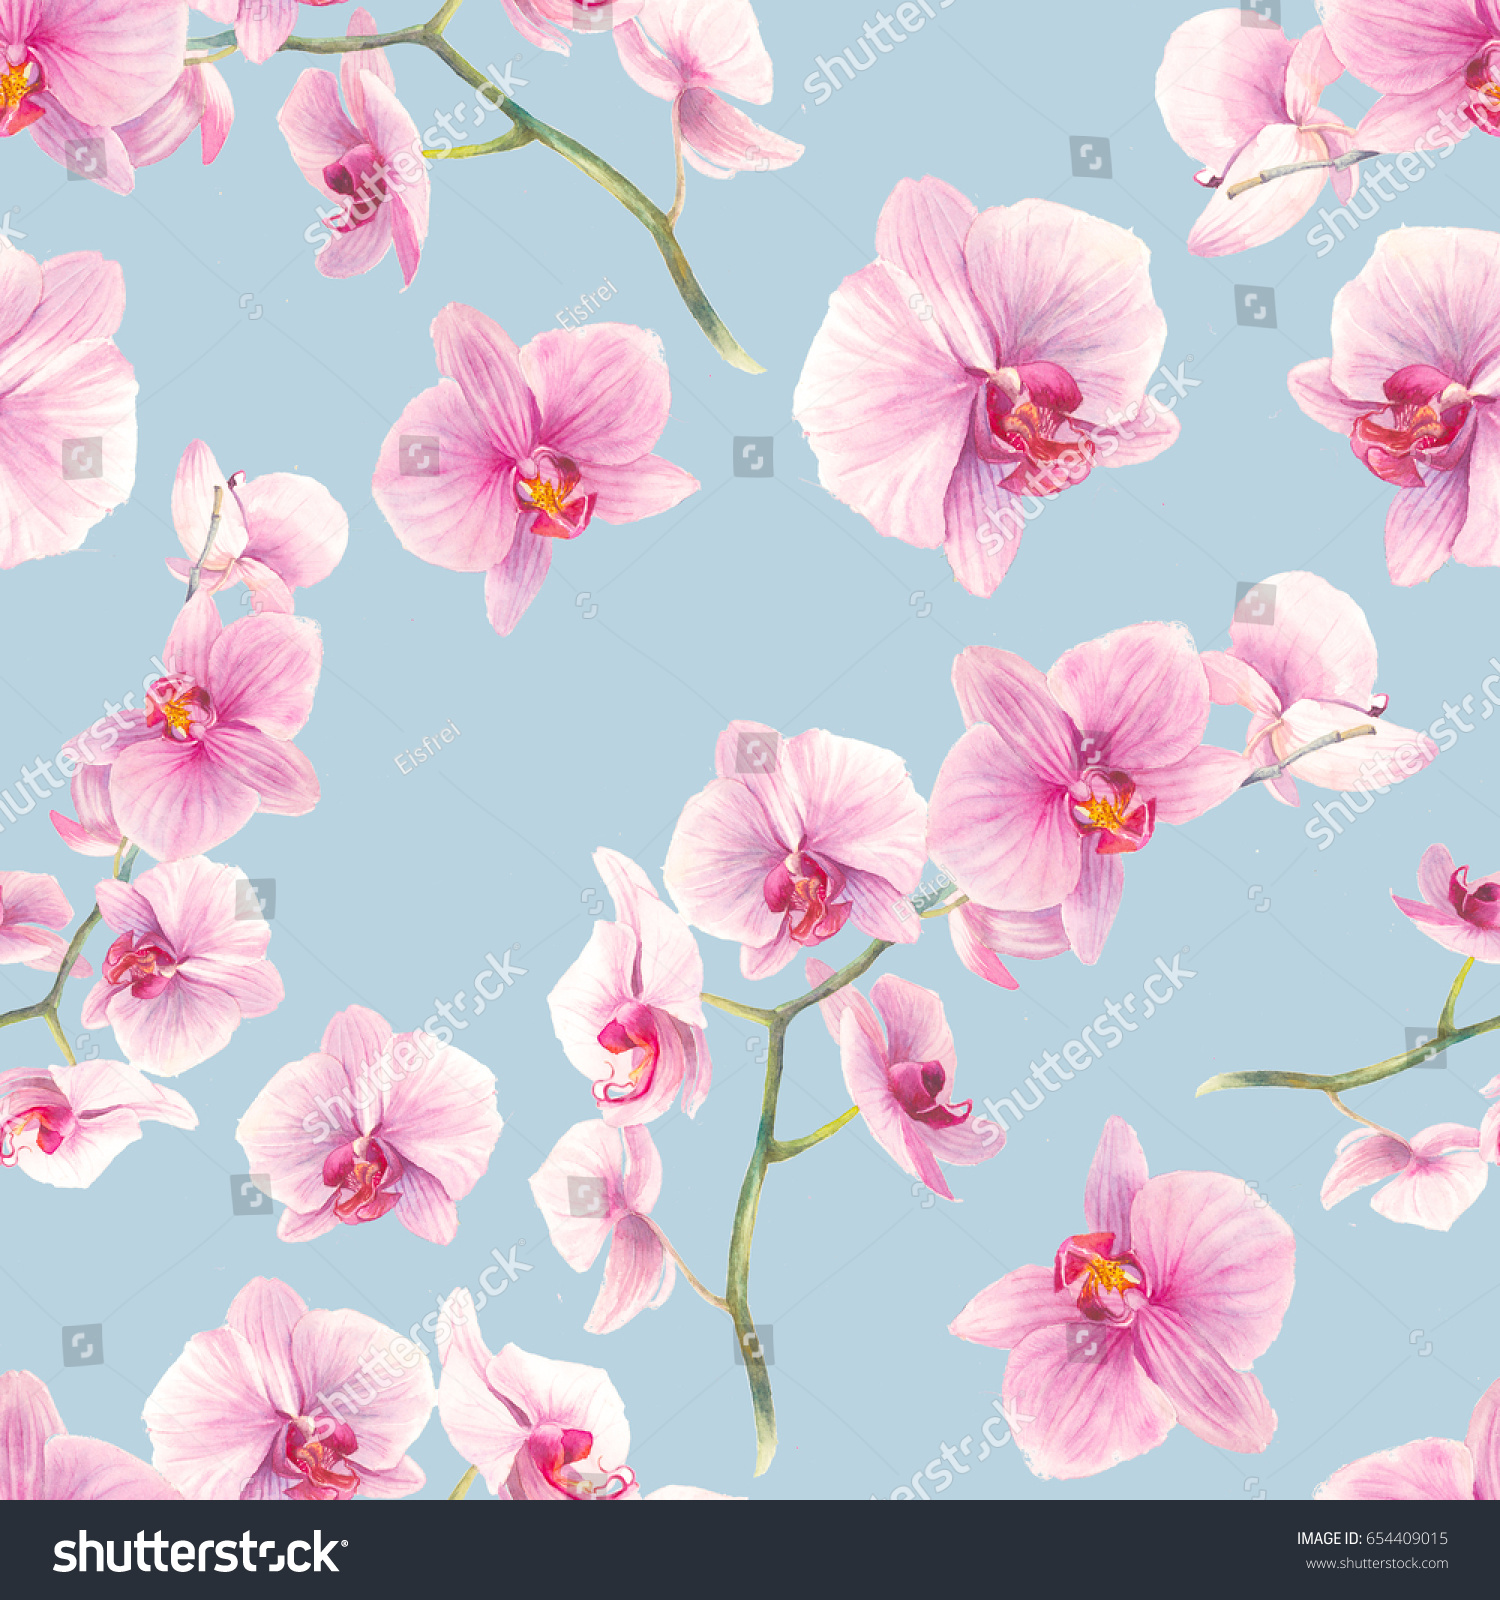 Watercolor Orchid Flowers Seamless Pattern Hand Drawn Wallpaper Design Repeating Texture With Floral Branches And Pink On White Background